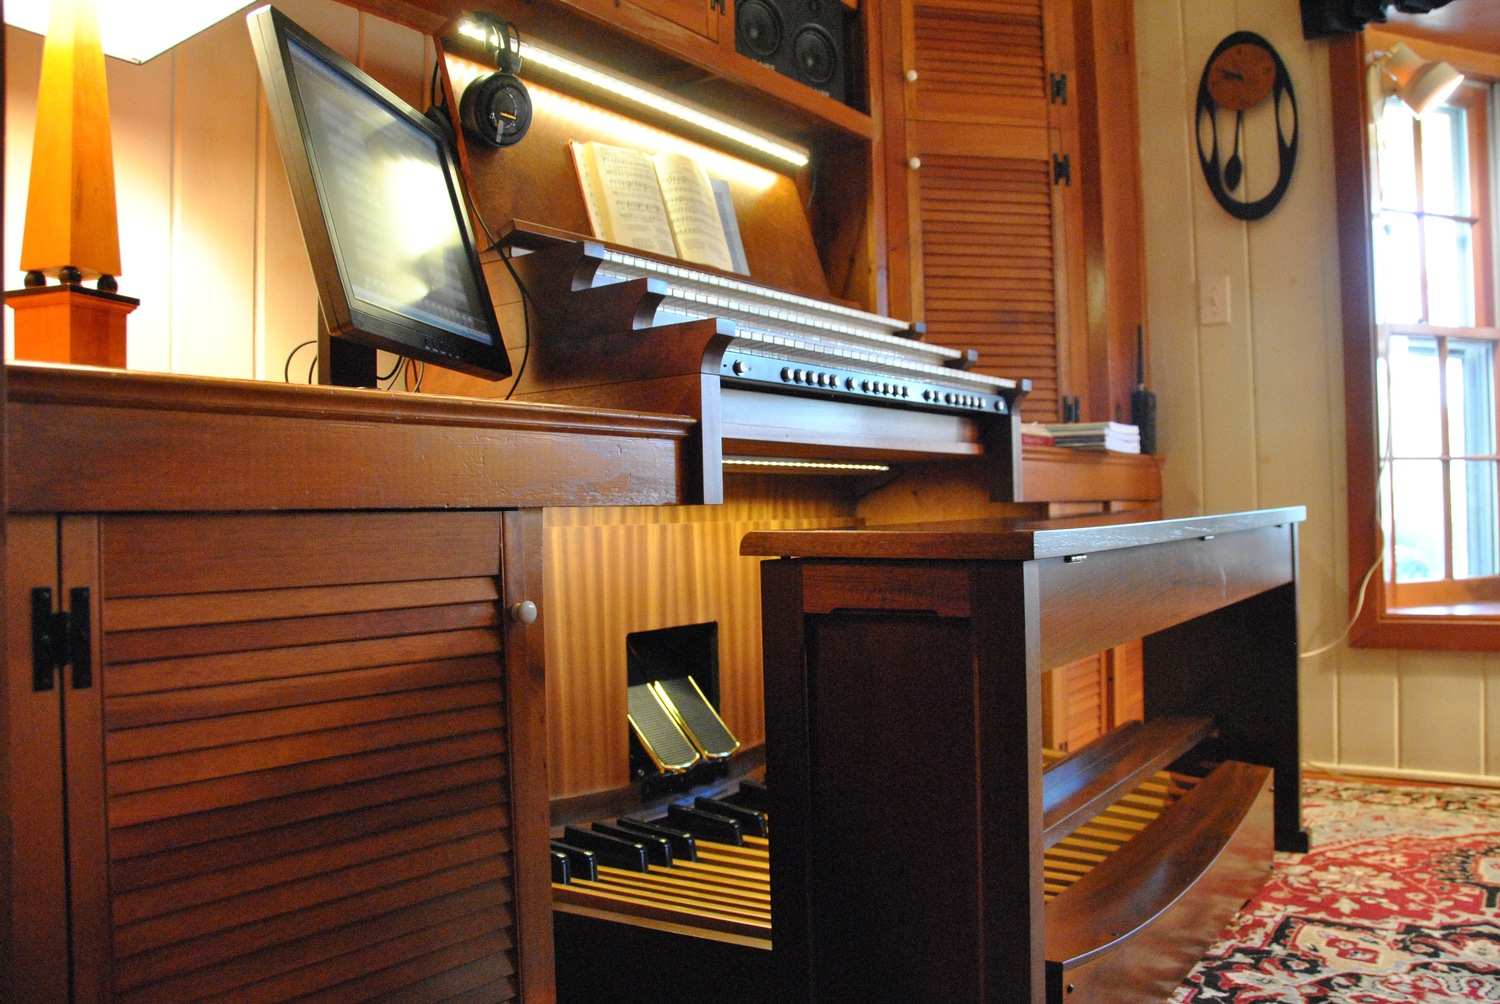 The console design and layout is based on the best pipe organs from France and England. Two hundred years ago these builders were already thinking about ergonomics.